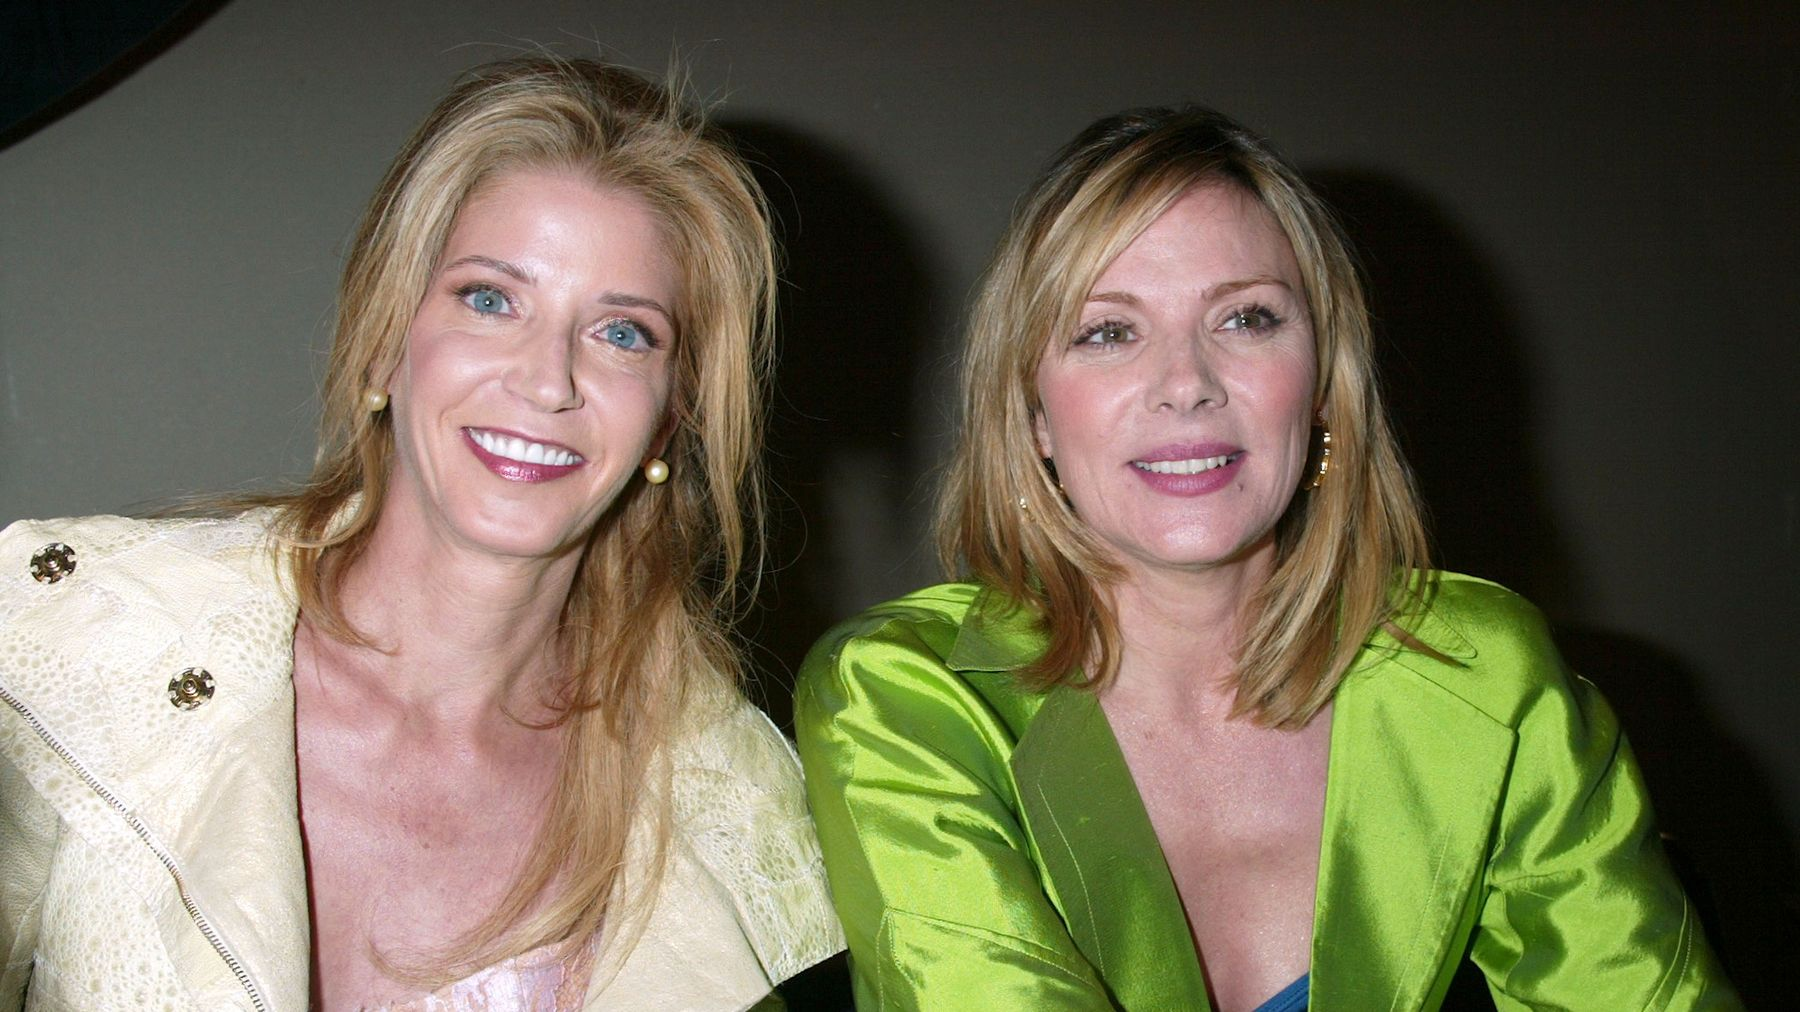 Candace Bushnell Regrets Not Having Kids - We Should Applaud